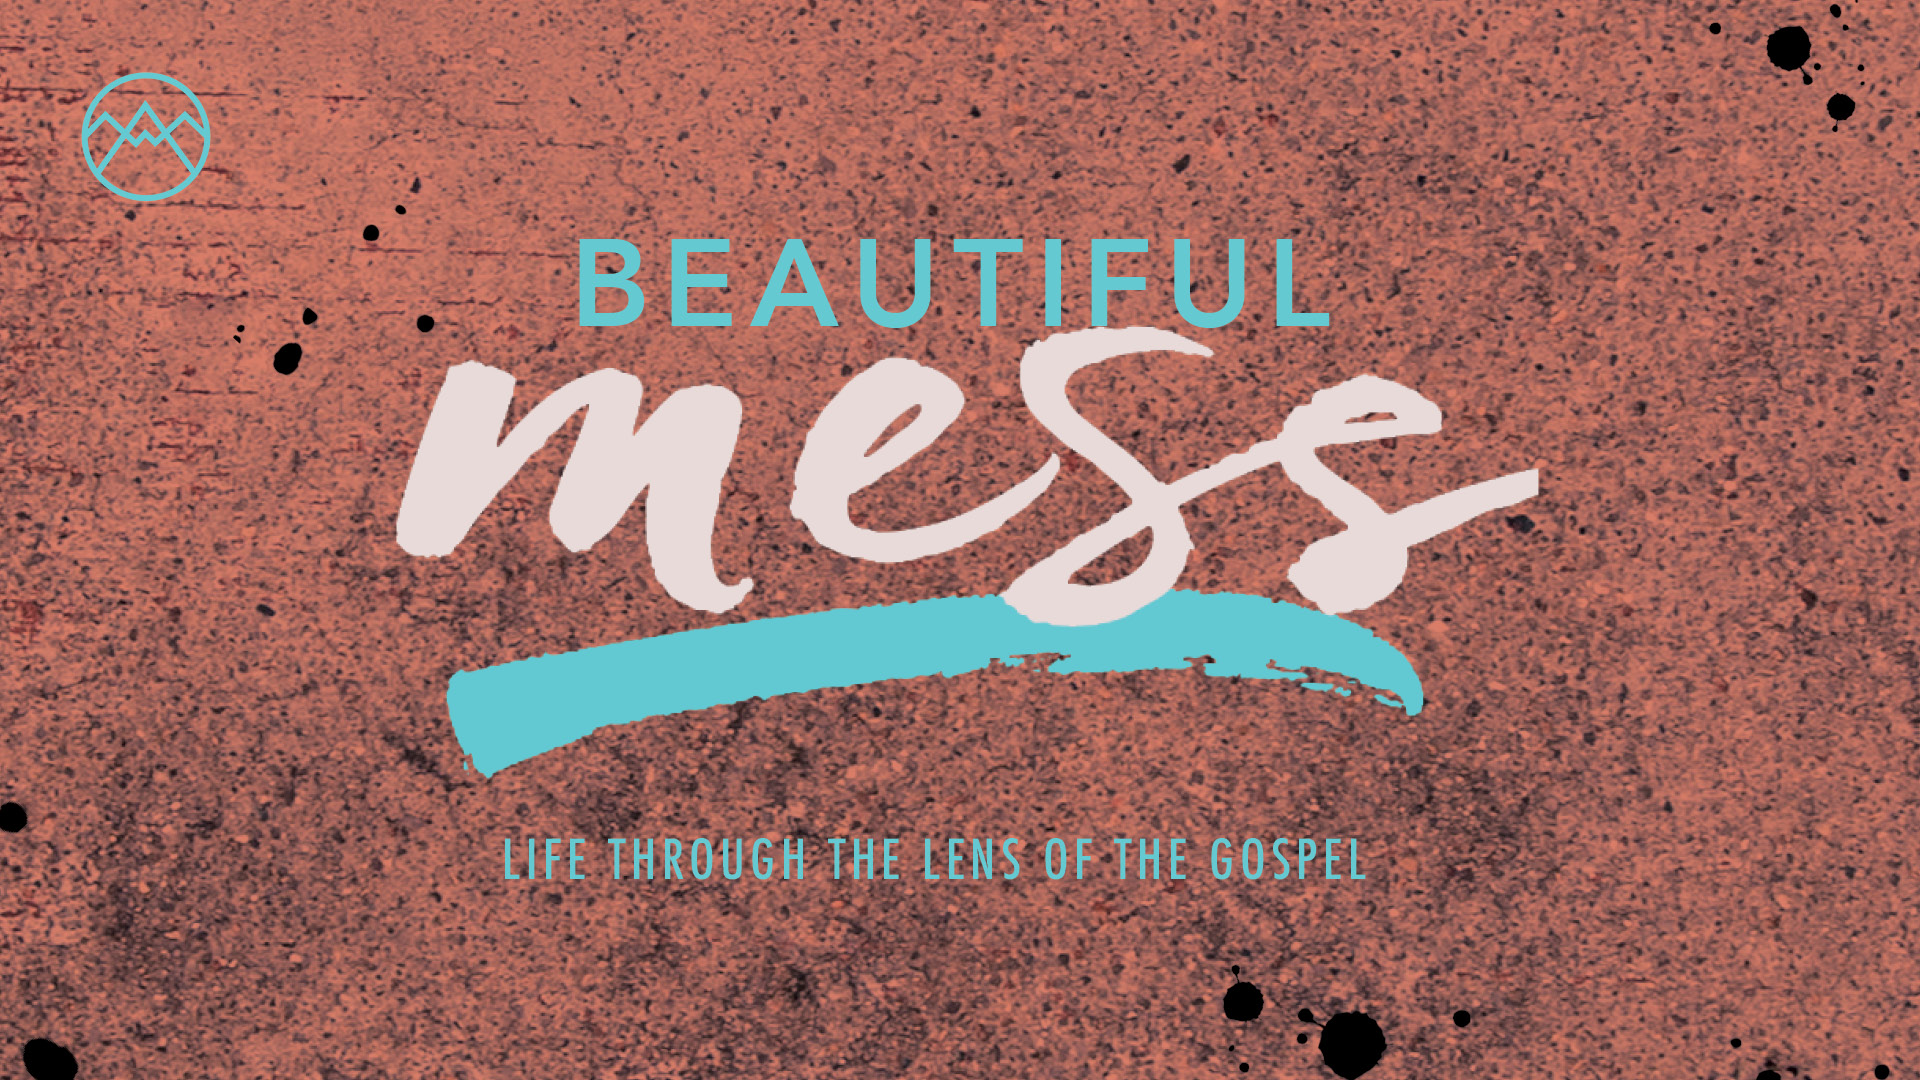 2019_GBC_sermons_Beautiful Mess_fb event_1920x1080px.jpg